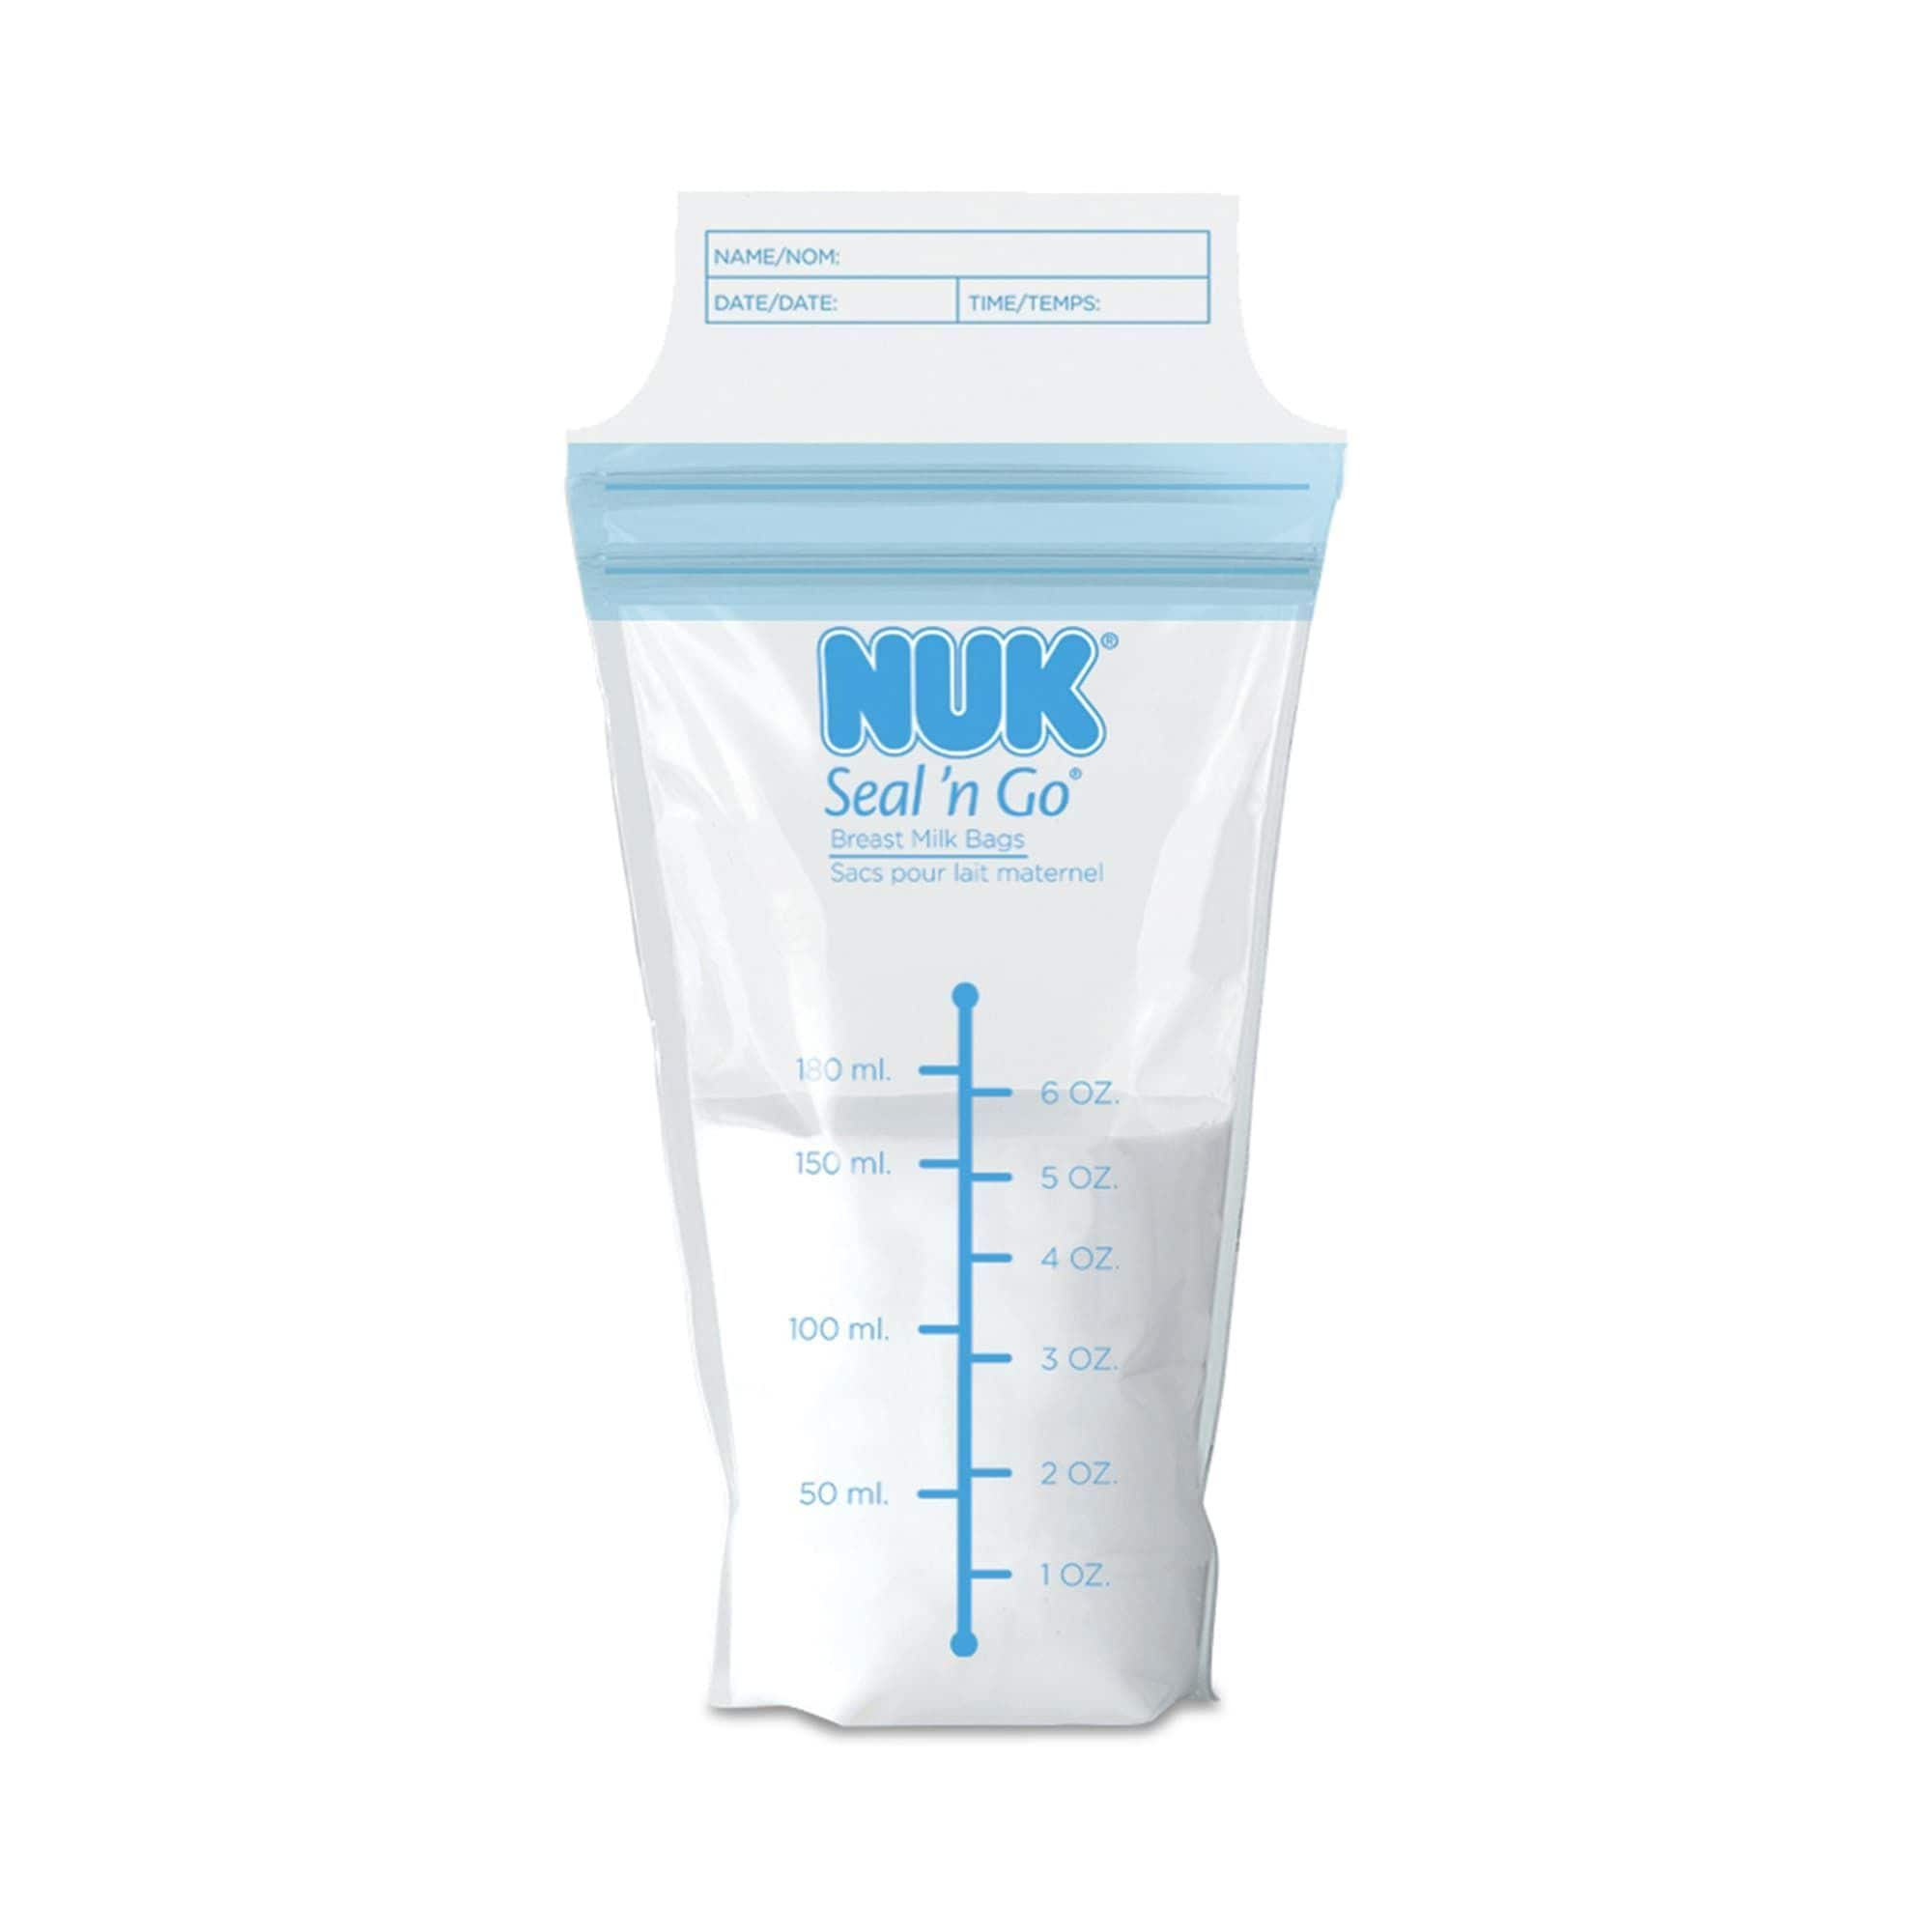 Nu-kote Seal 'n Go Breast Milk Bags (Pack of 25) (Clear),...